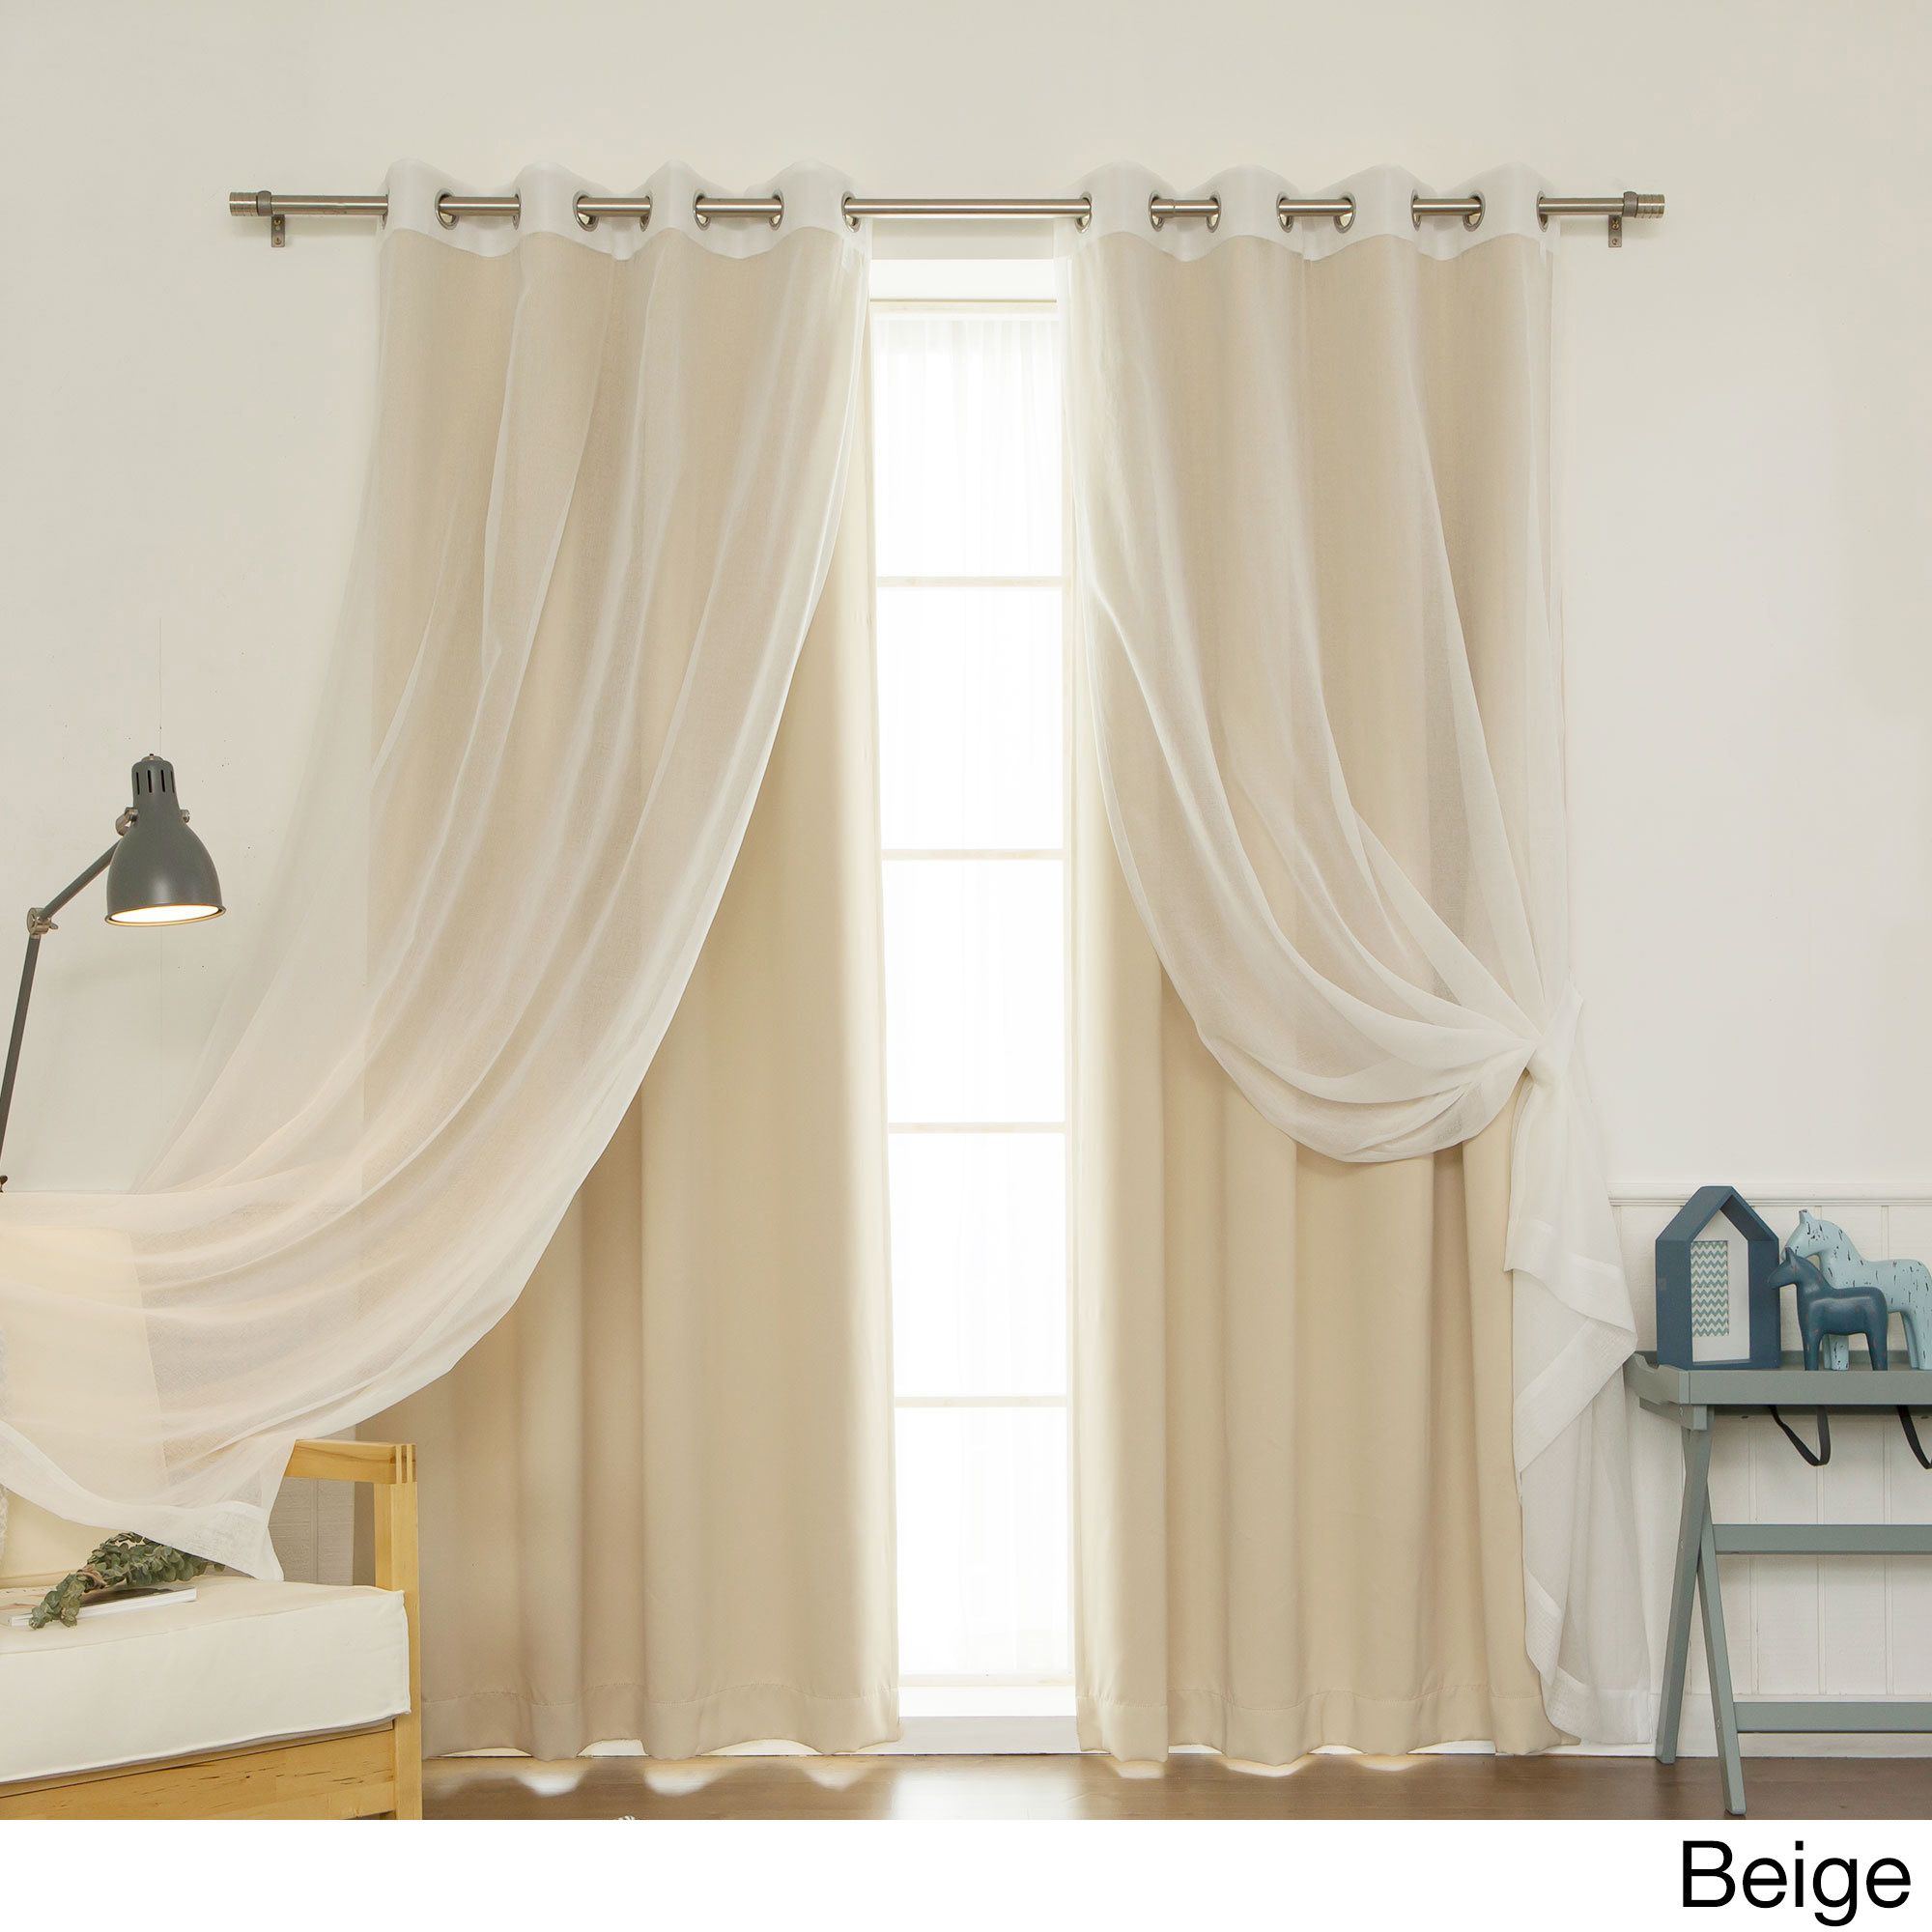 curtain end bath ikea decorating white light navy decoration heat block blackout breathtaking and ideas table blacko for blue blocking ruffled curtains with bed chair resistant home color beyond drapes